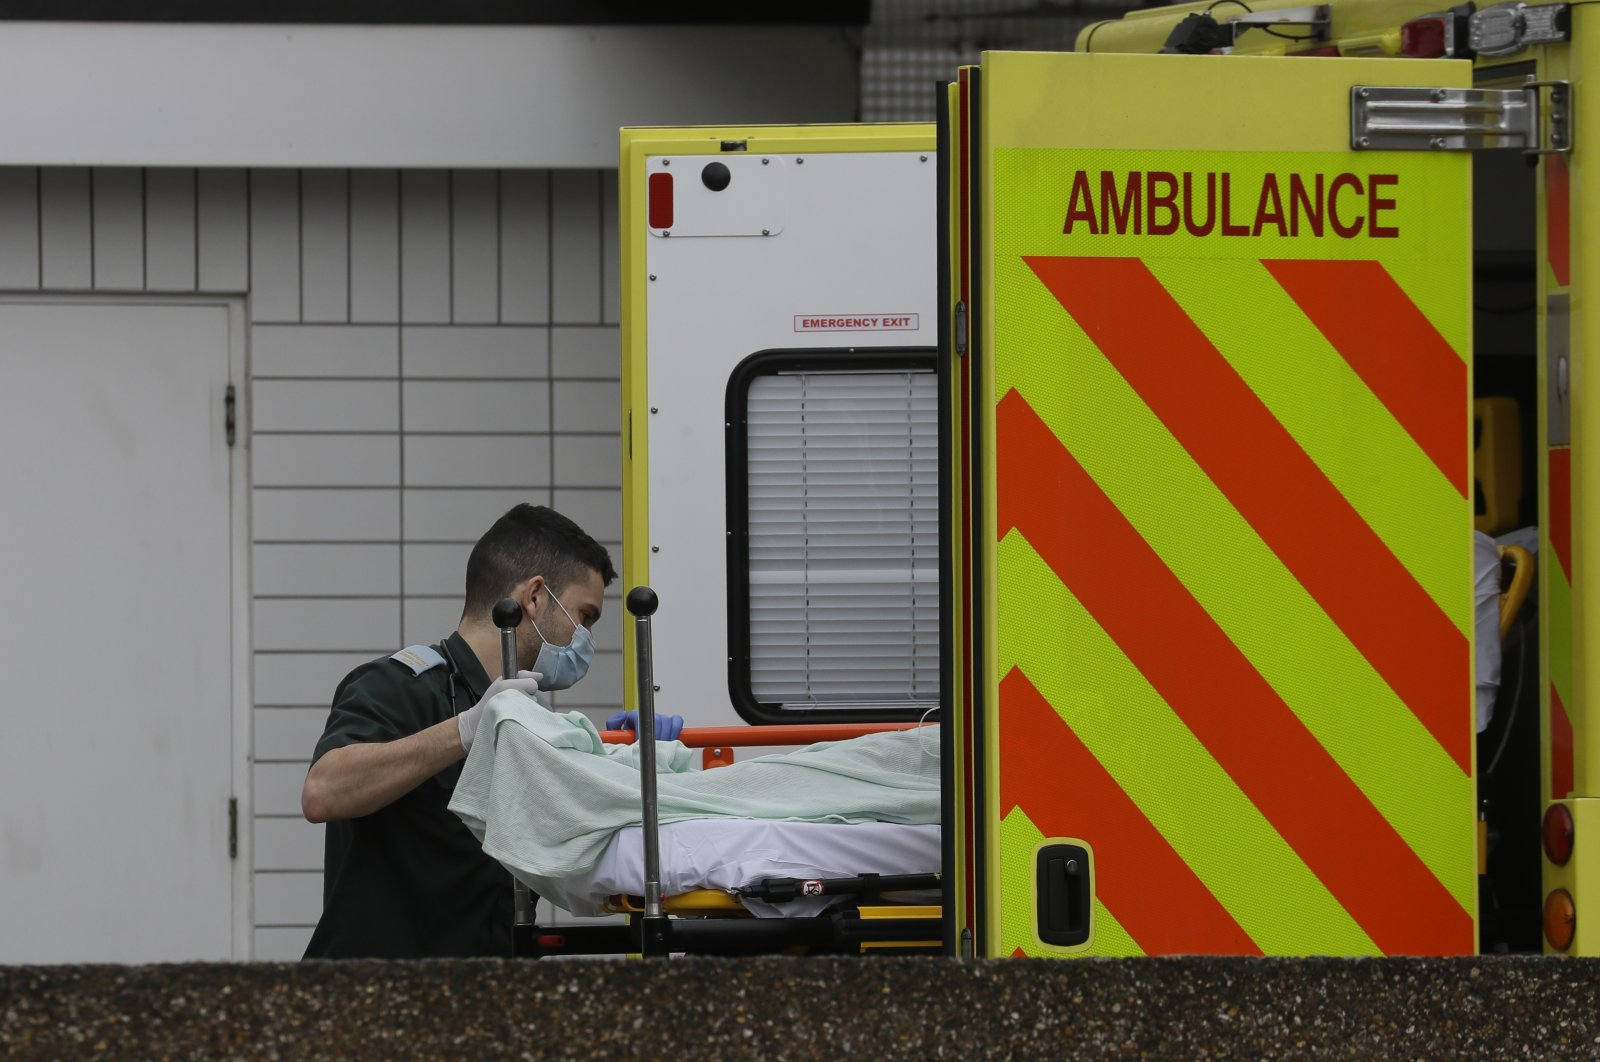 A patients is helped from an ambulance as they arrive at St Thomas' Hospital, one of may hospitals that are in the front line of the coronavirus outbreak, in London, Tuesday, March 31, 2020. (AP Photo)